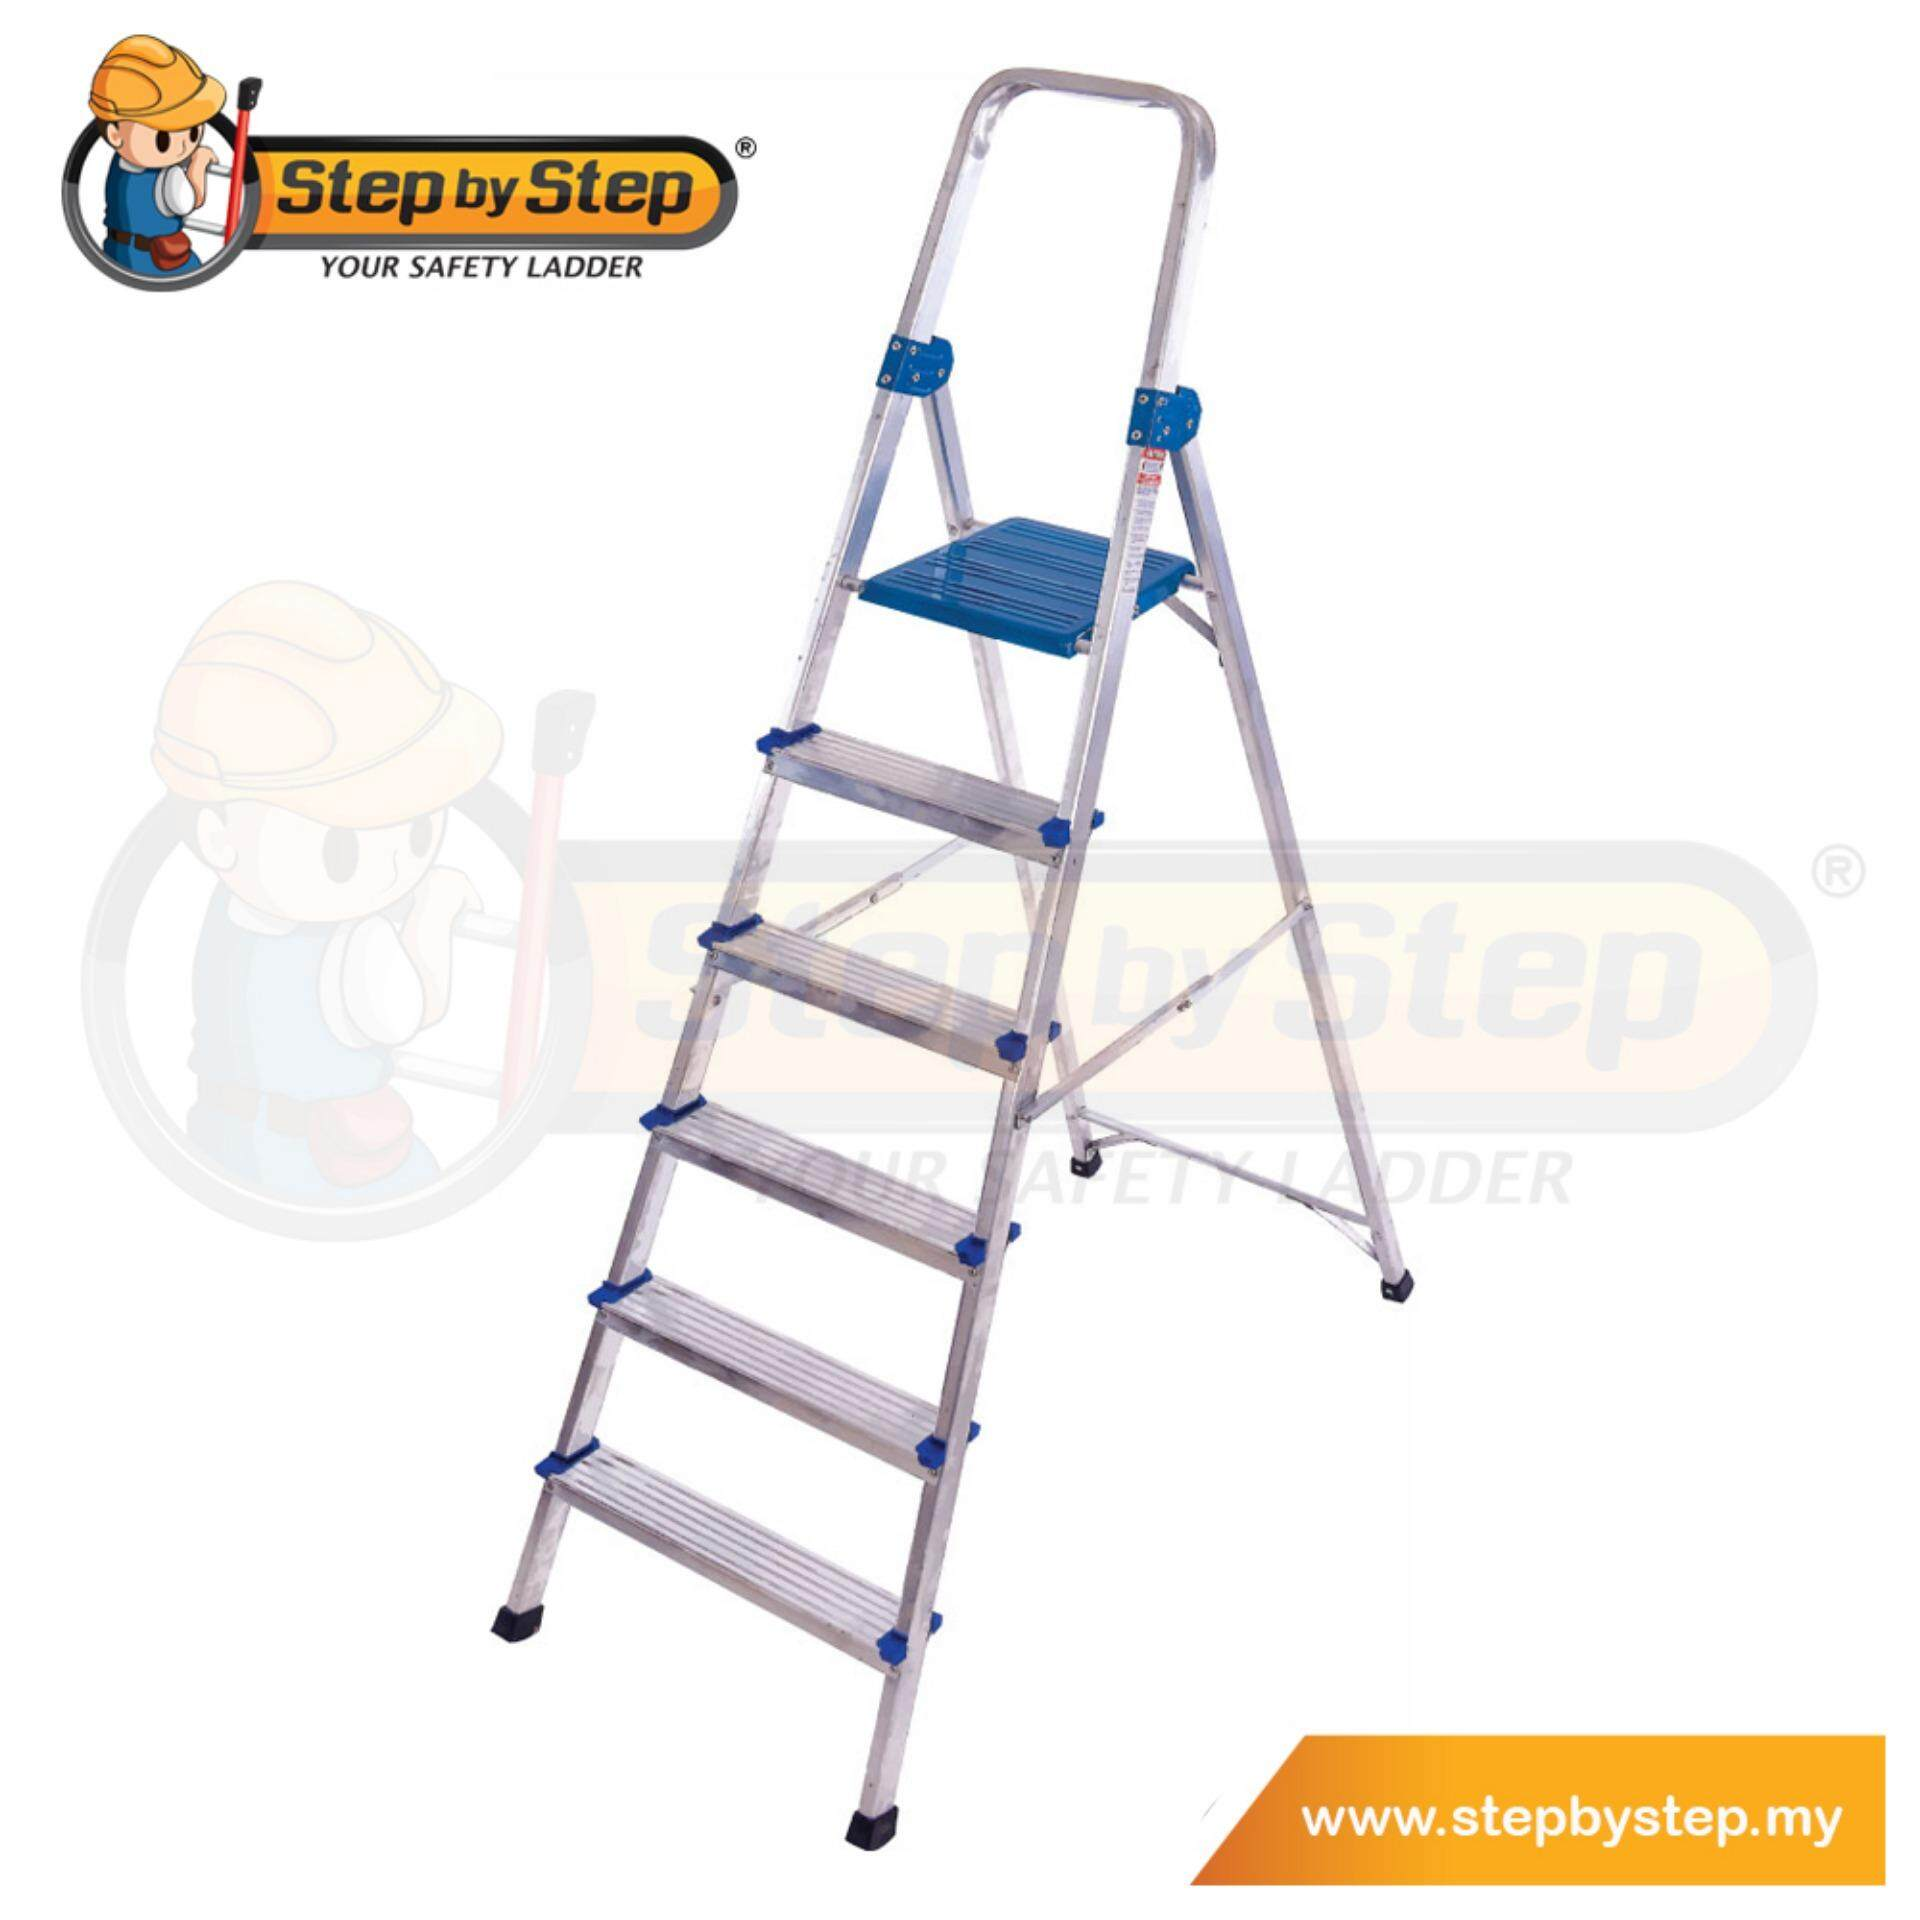 Step by Step Aluminium Queen Ladder with Handrail (QL06) - 6 Steps